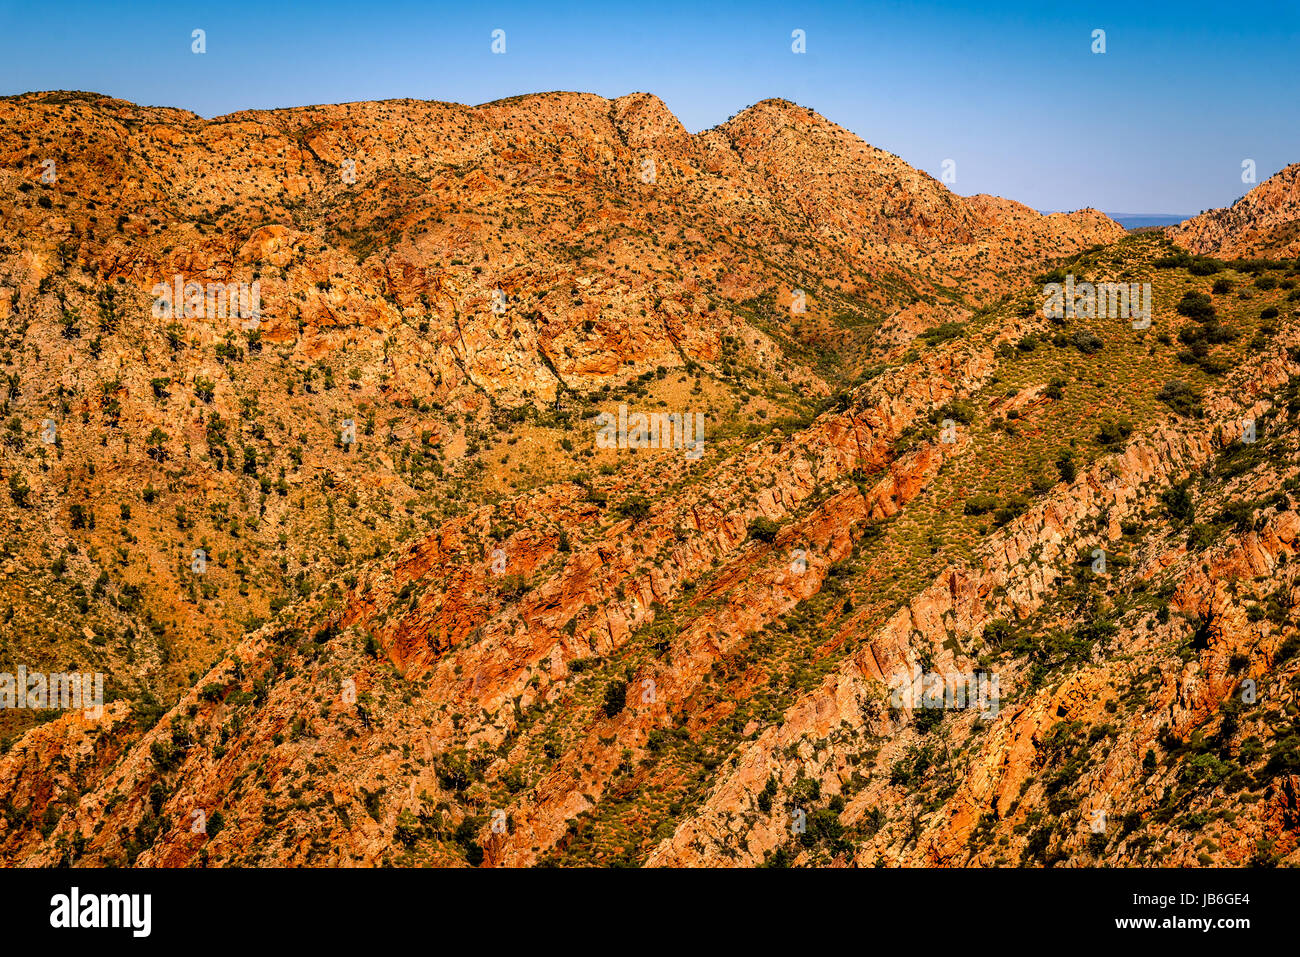 Chewings Range at West Macdonnell Ranges, Northern Territory - Stock Image